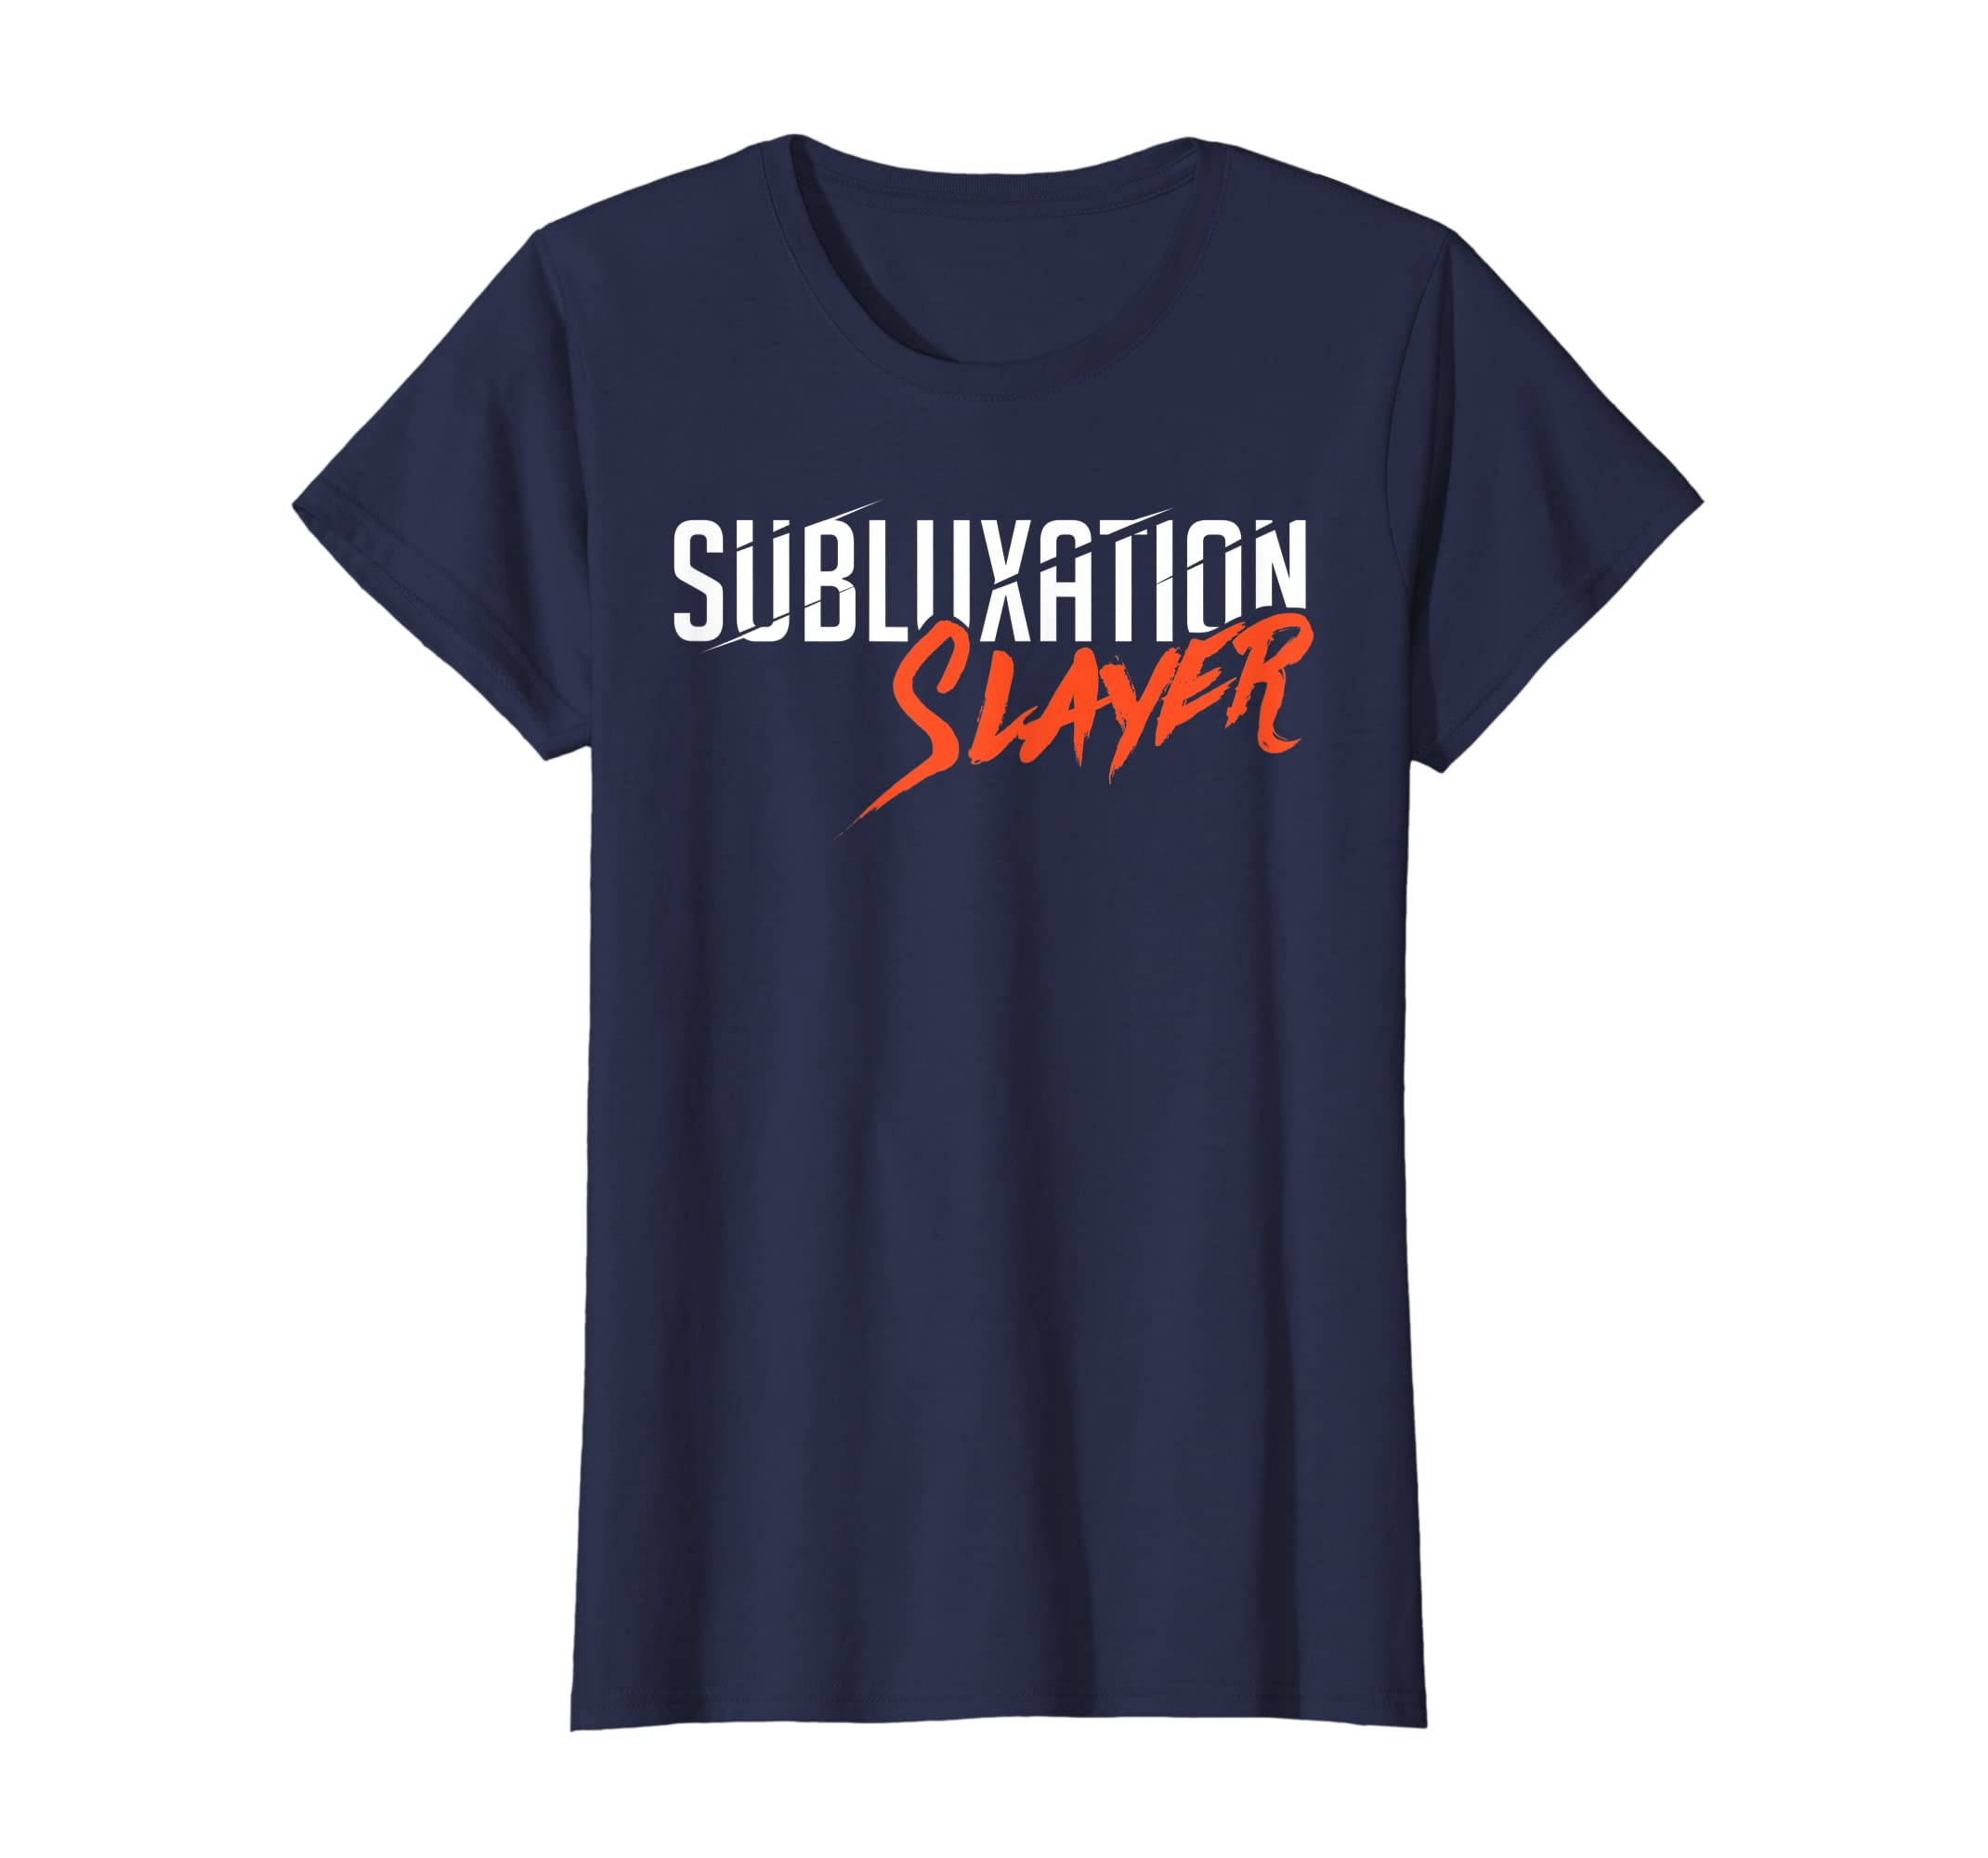 24b2ff3a Amazon.com: Subluxation Slayer Back Bone Spine Chiropractor Fun T Shirt:  Clothing